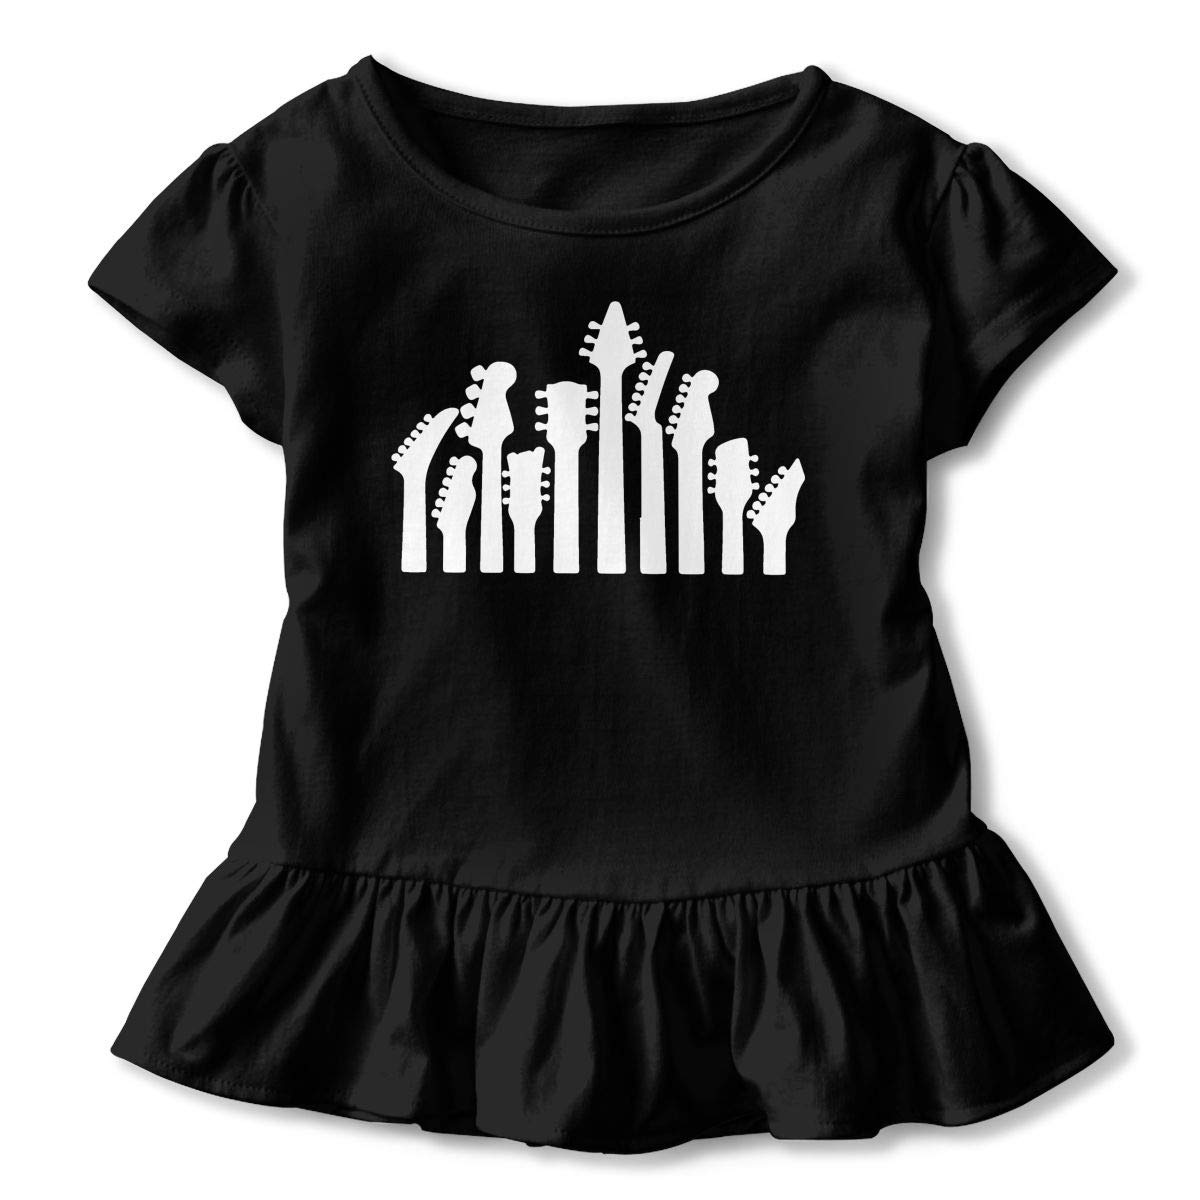 2-6 Years Vfbggg-Shirt Music Guitar Musical Baby Girls Short Sleeve Ruffle Tee Cotton Kids T Shirts